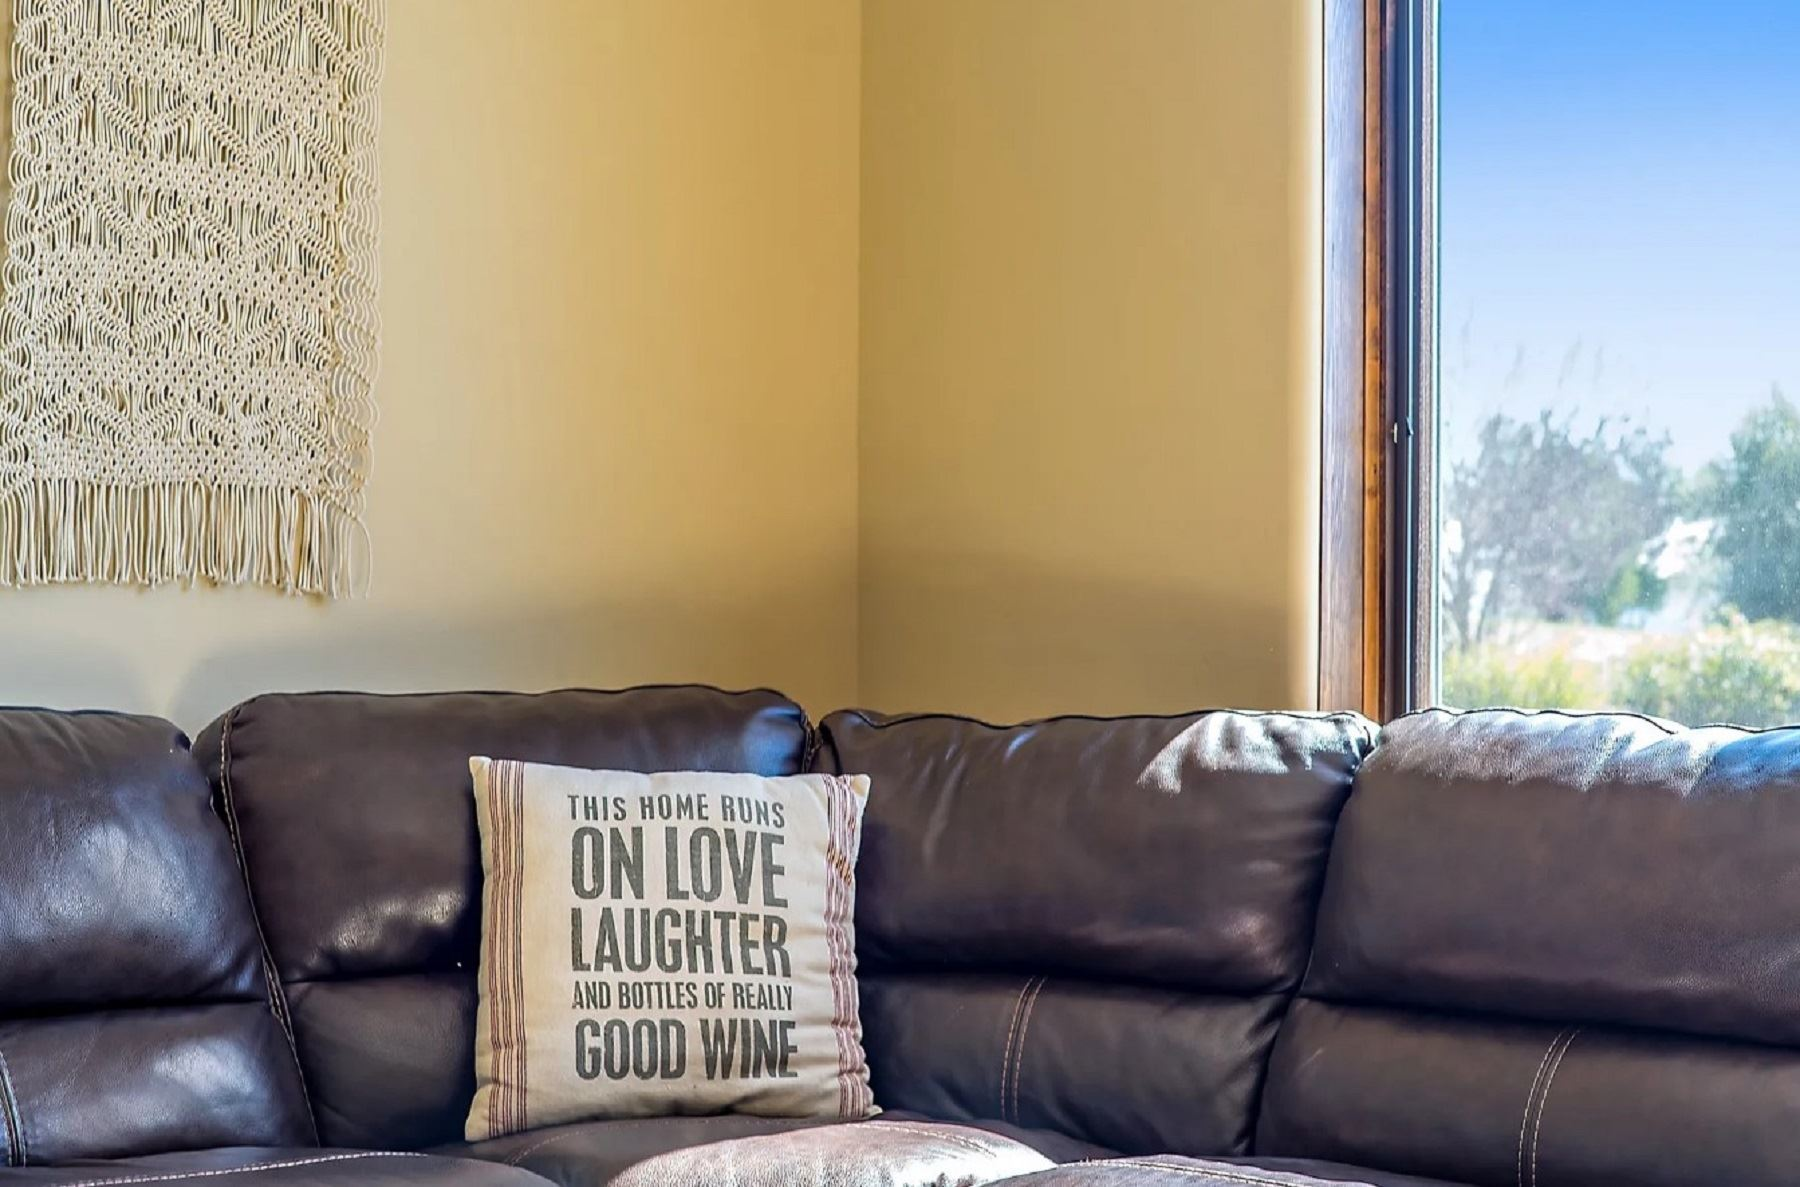 Frontier Farmhouse - Interior - Close up on corner of leather sectional and decor pillow that says This Home Runs on Love Laughter and Bottles of Really Good Wine